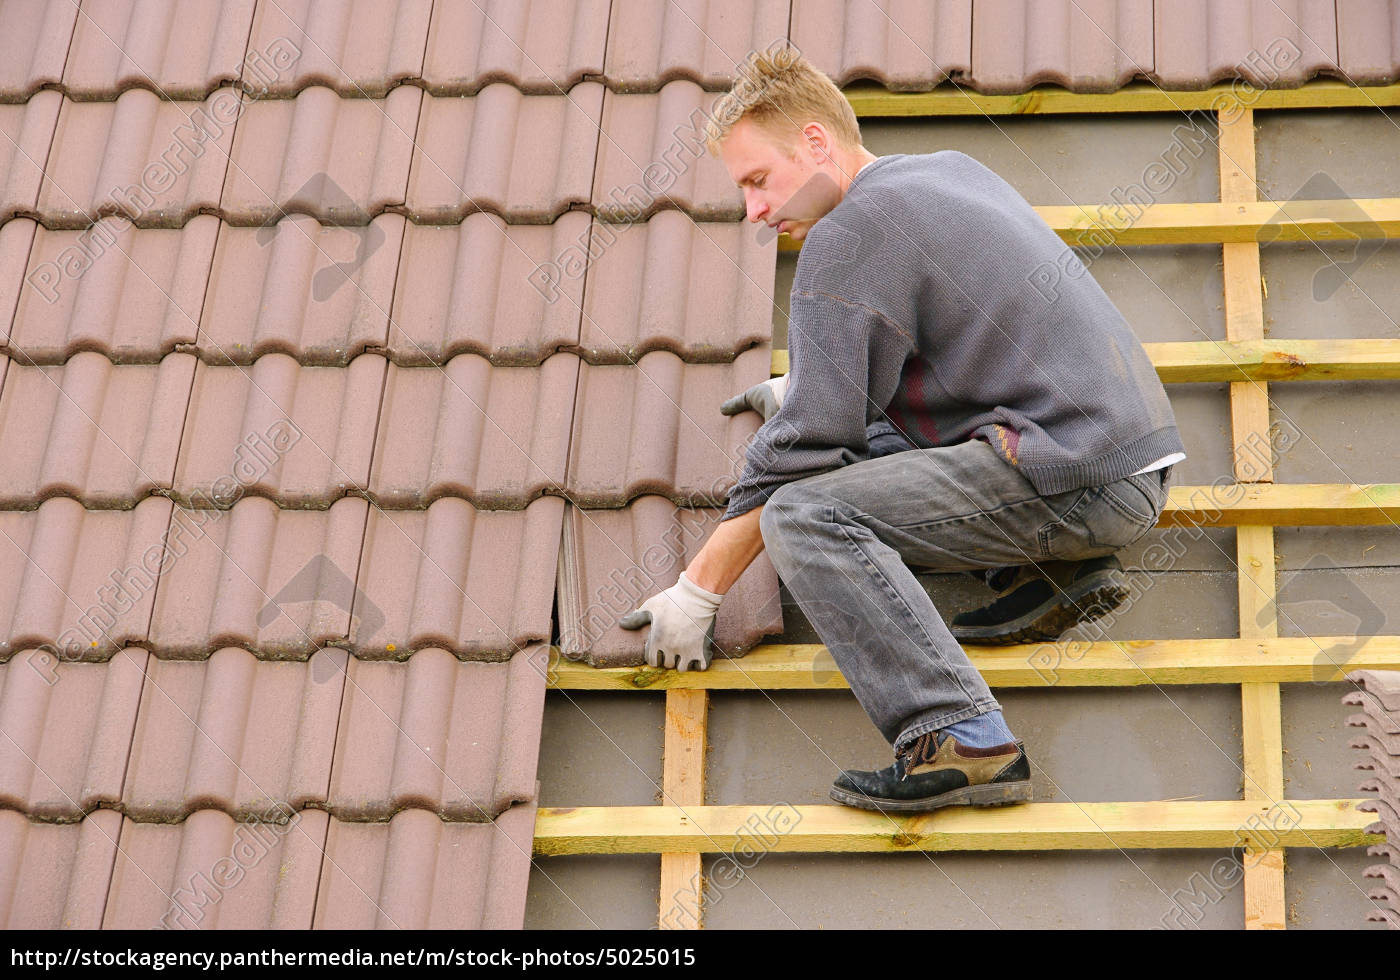 dach, decken, -, tile, roof, covering - 5025015